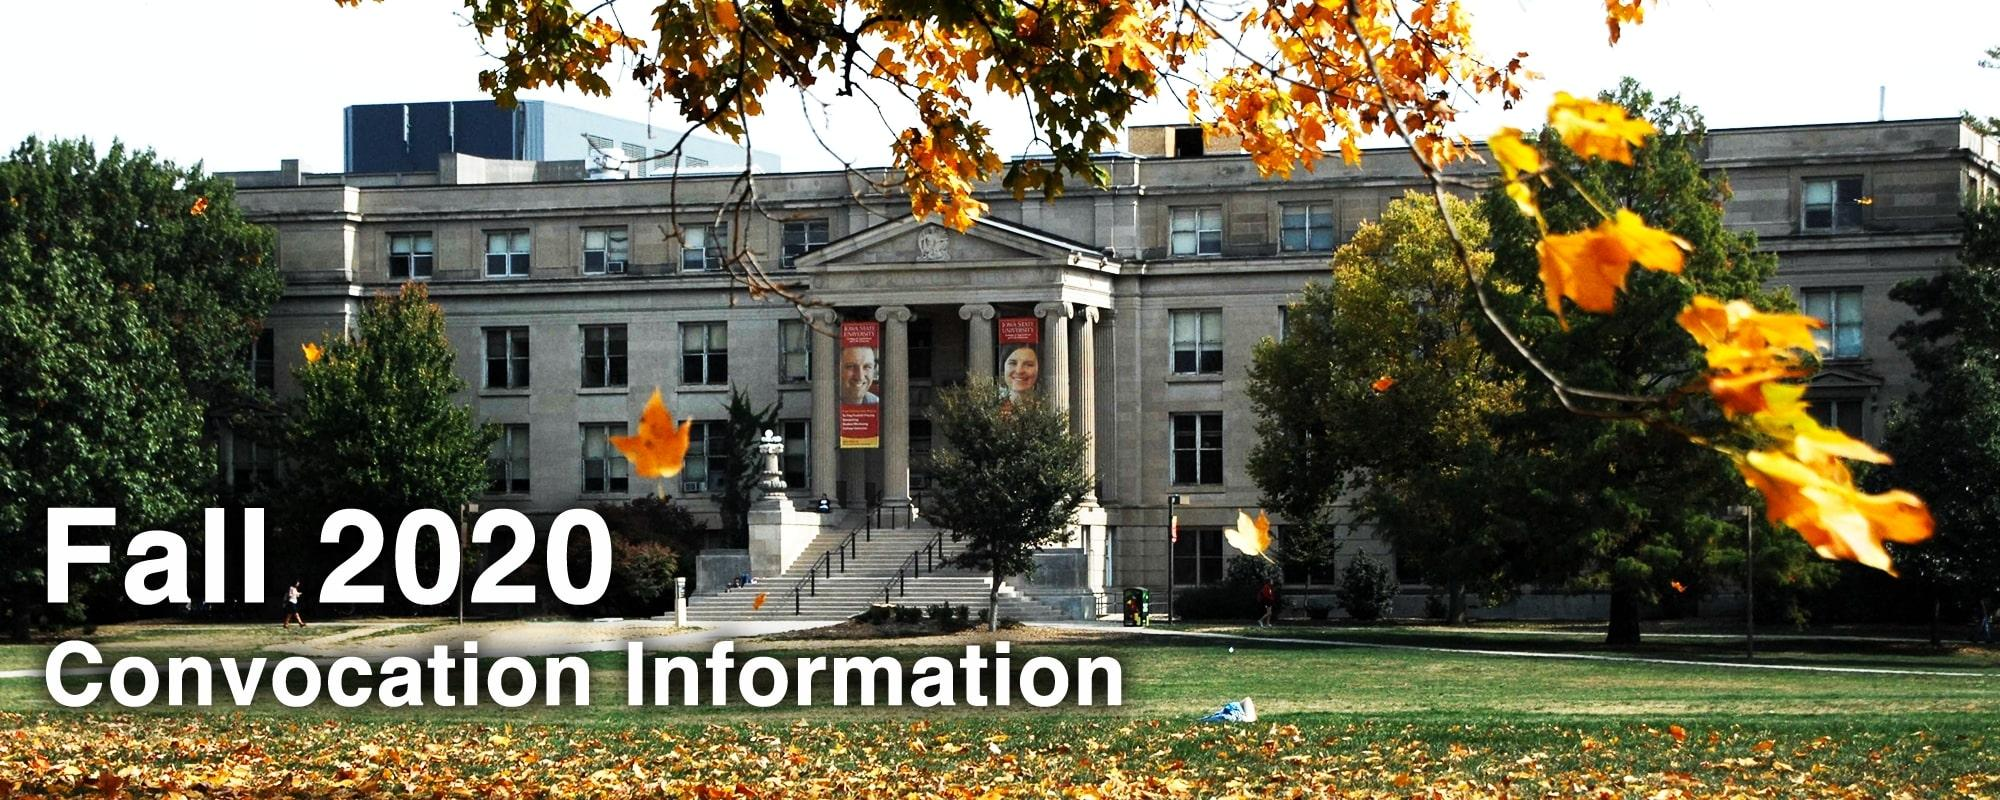 Fall 2020 Convocation Information